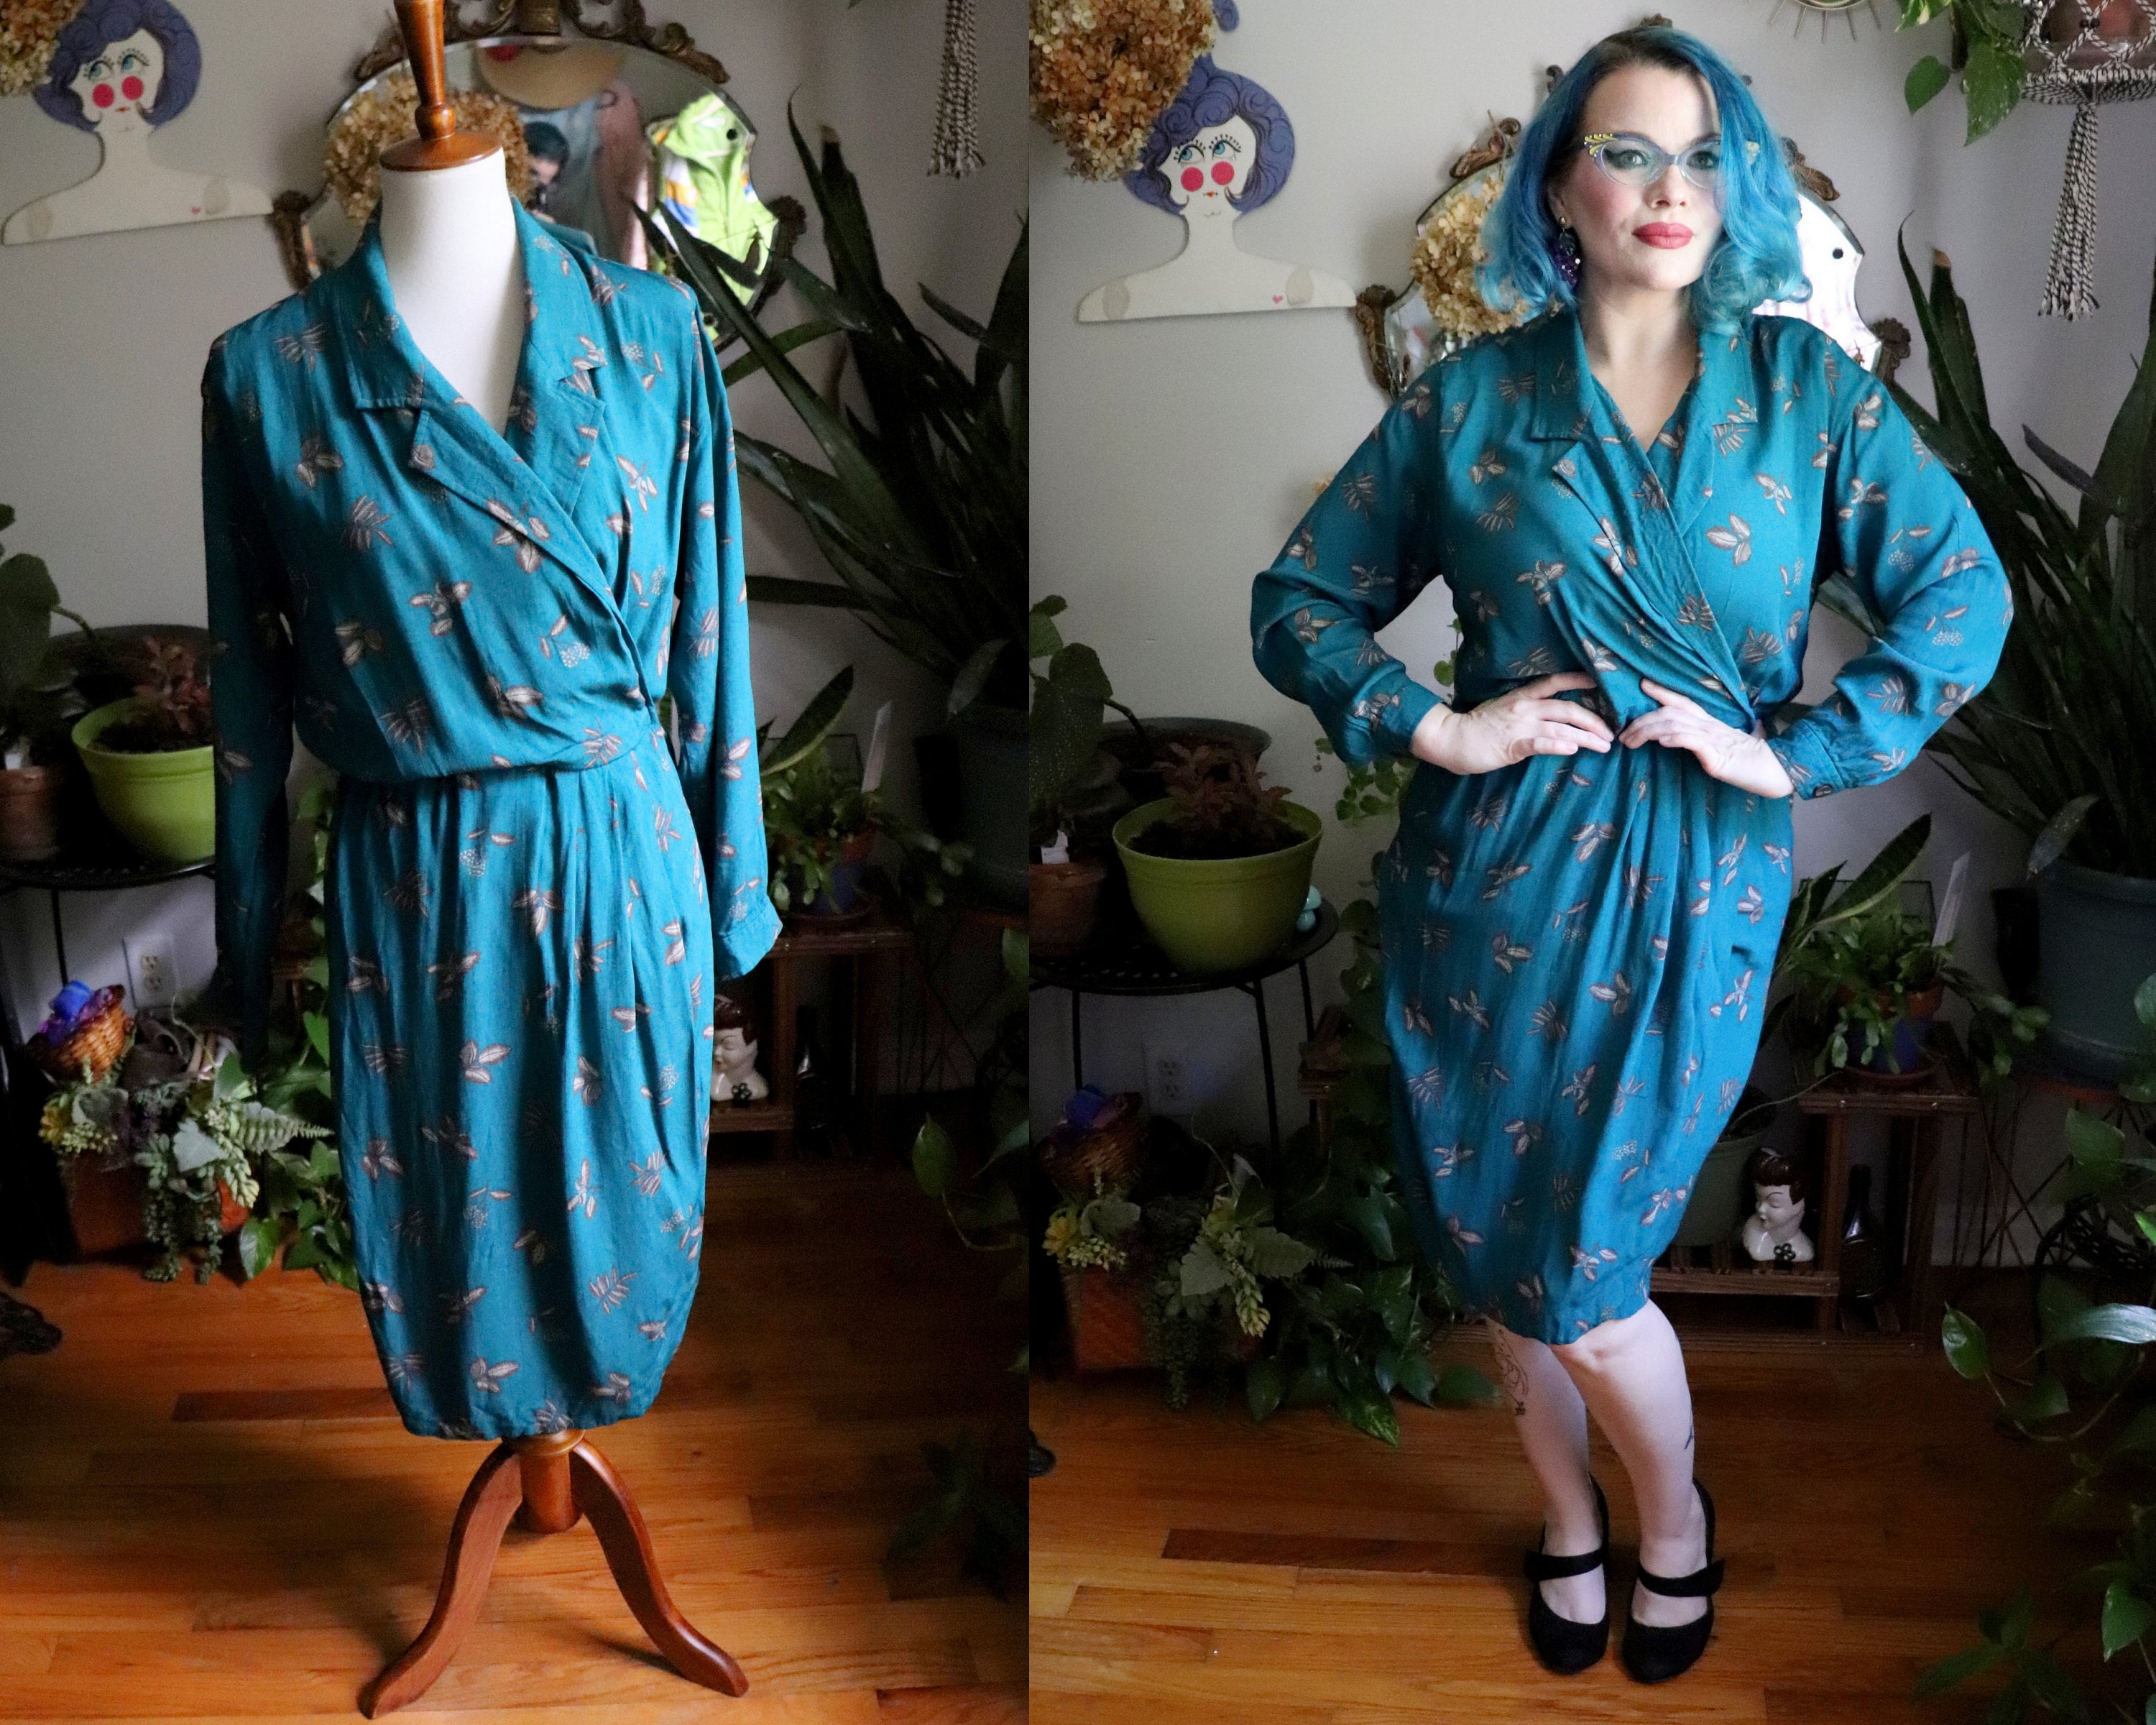 80s Dresses | Casual to Party Dresses Leeann Dress  Vintage 1980s Does 1940s Teal Wrap Style With Herb Print By Liz Claiborne Xs-S $46.80 AT vintagedancer.com